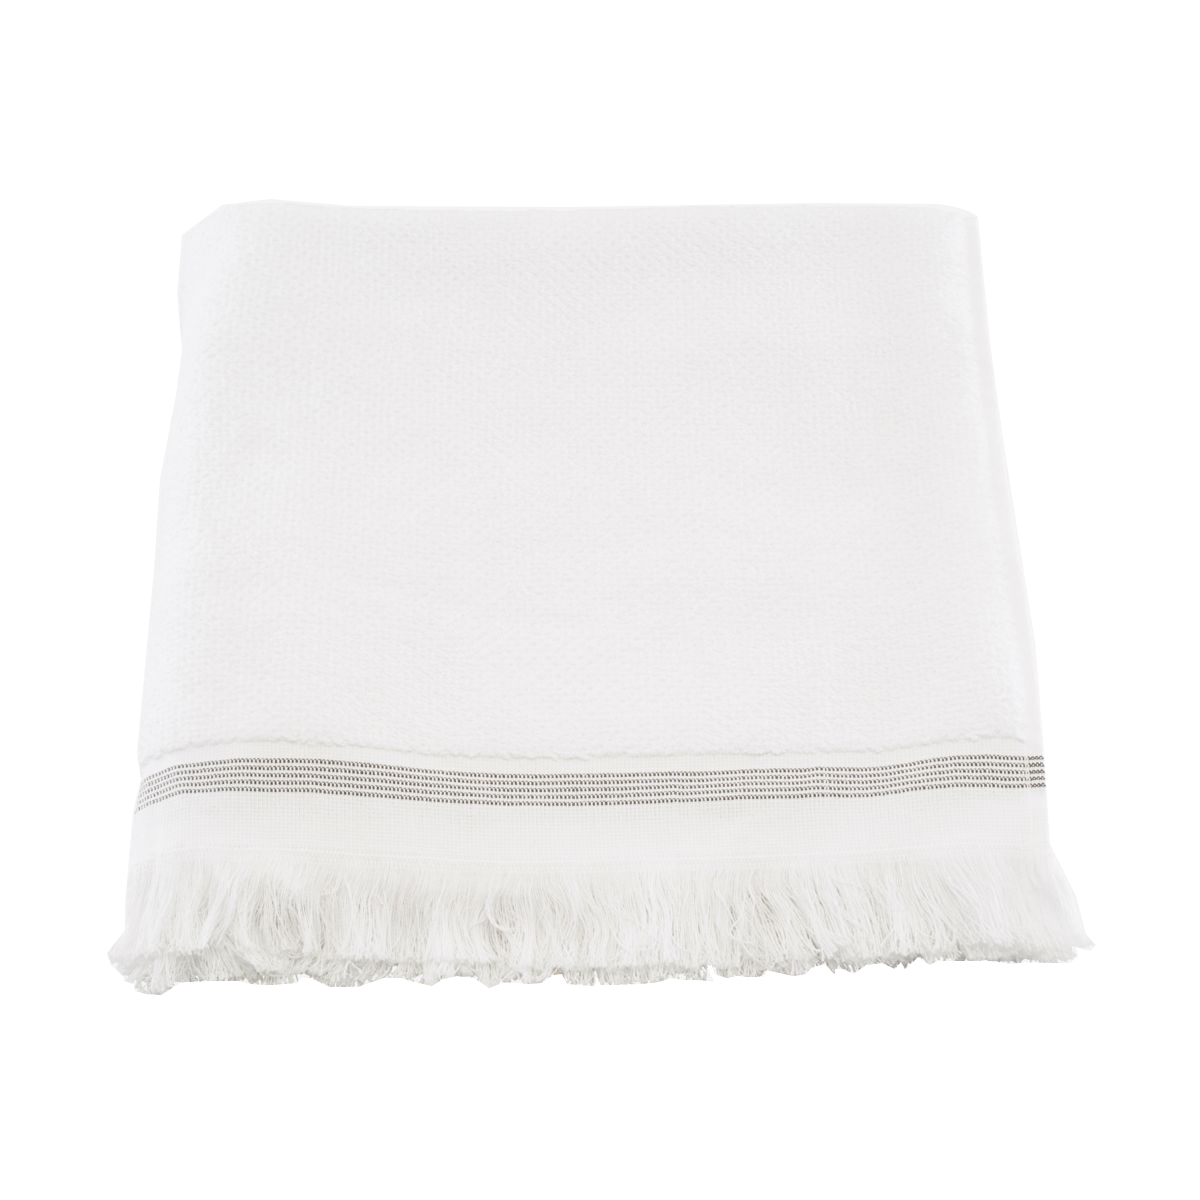 Meraki - Towel 70 x 140 cm - White/Grey Stripe (Mkds04/357780004)